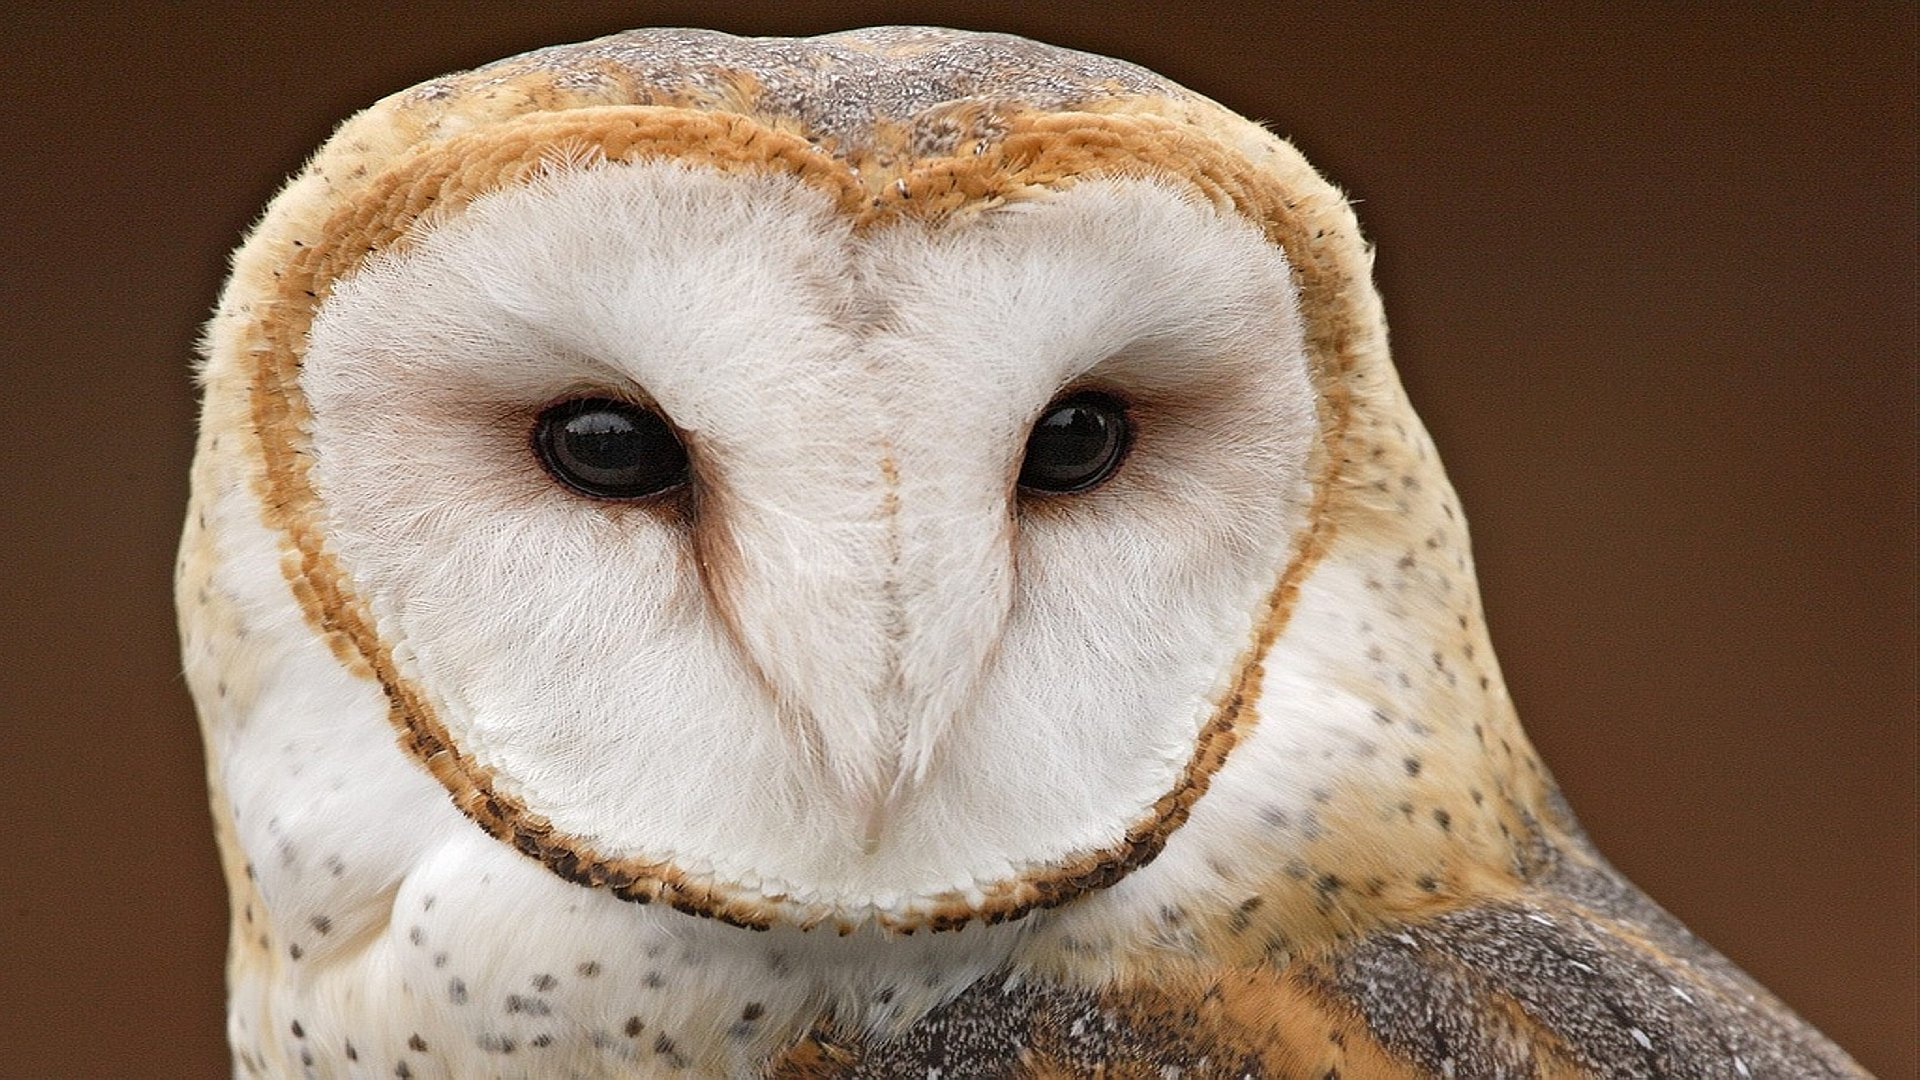 High resolution Barn Owl full hd 1920x1080 wallpaper ID:81577 for computer